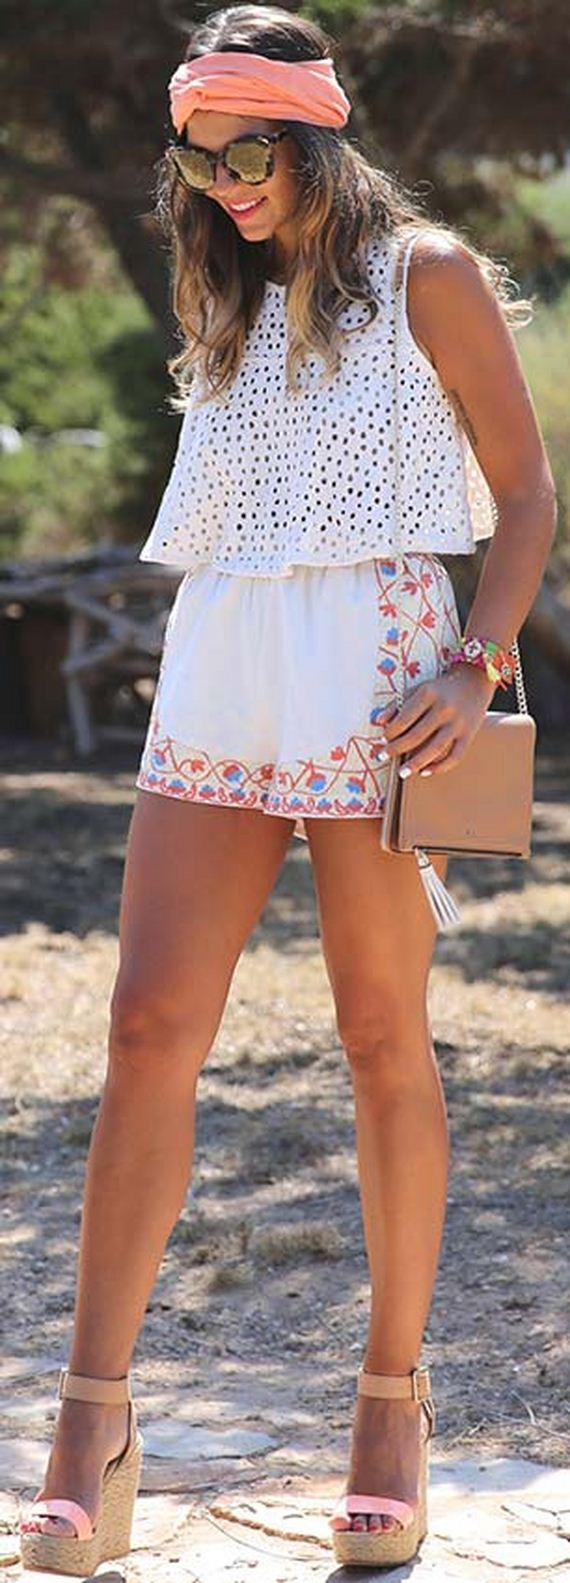 01-Cute-Summer-Outfits